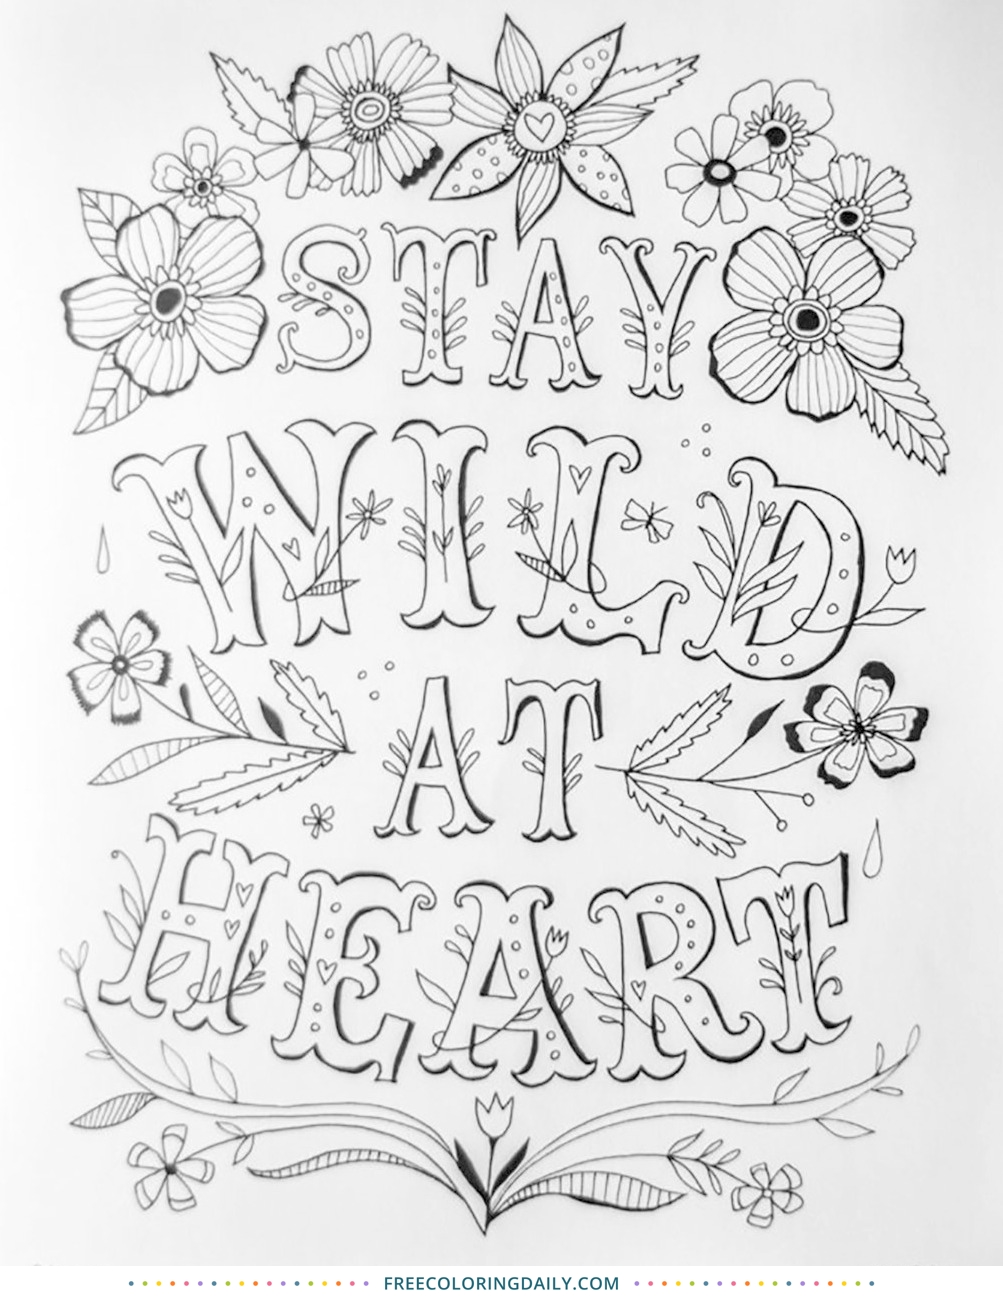 Free Wild at Heart Coloring Sheet